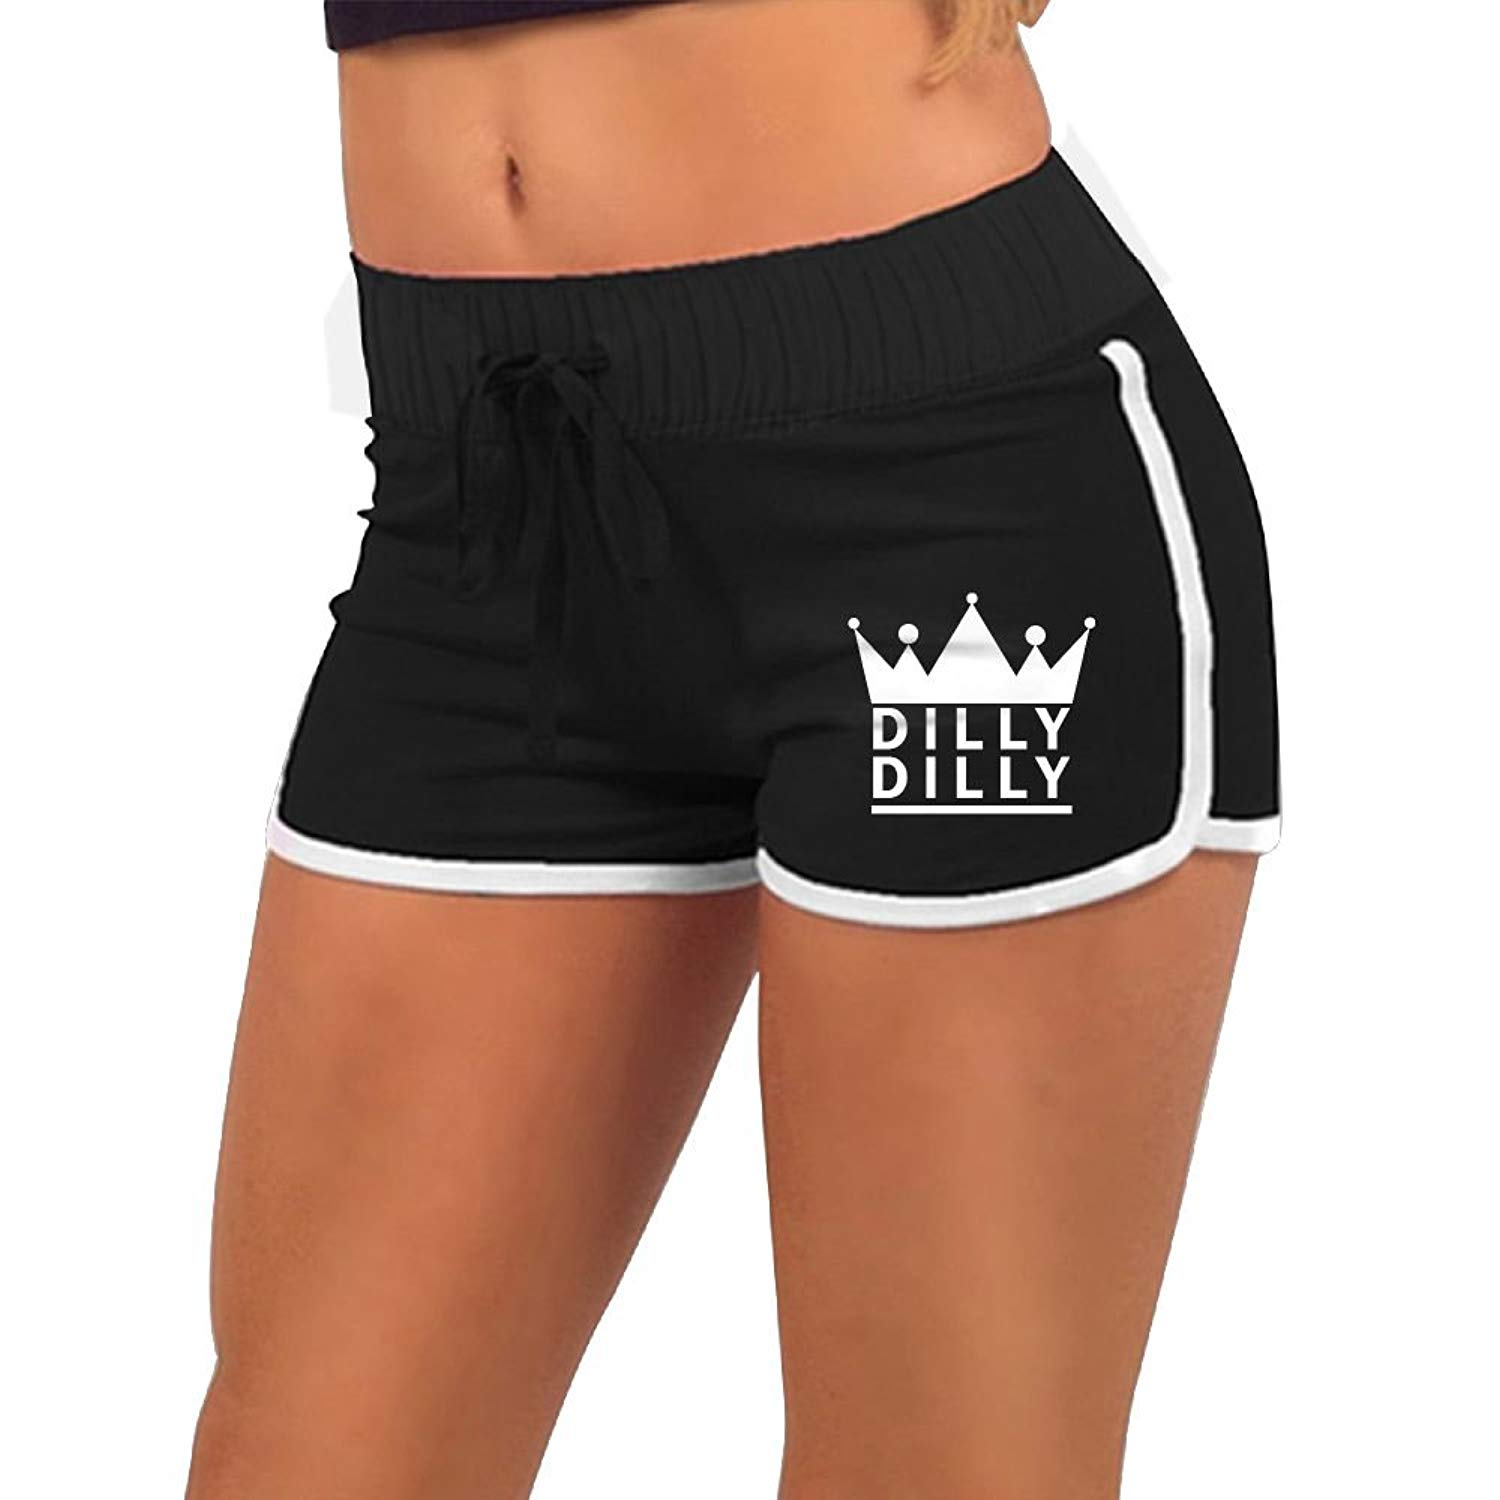 GGRXL Dilly Dilly Beer Medieval Women Workout Shorts Running Shorts Athletic Elastic Waist Yoga Shorts